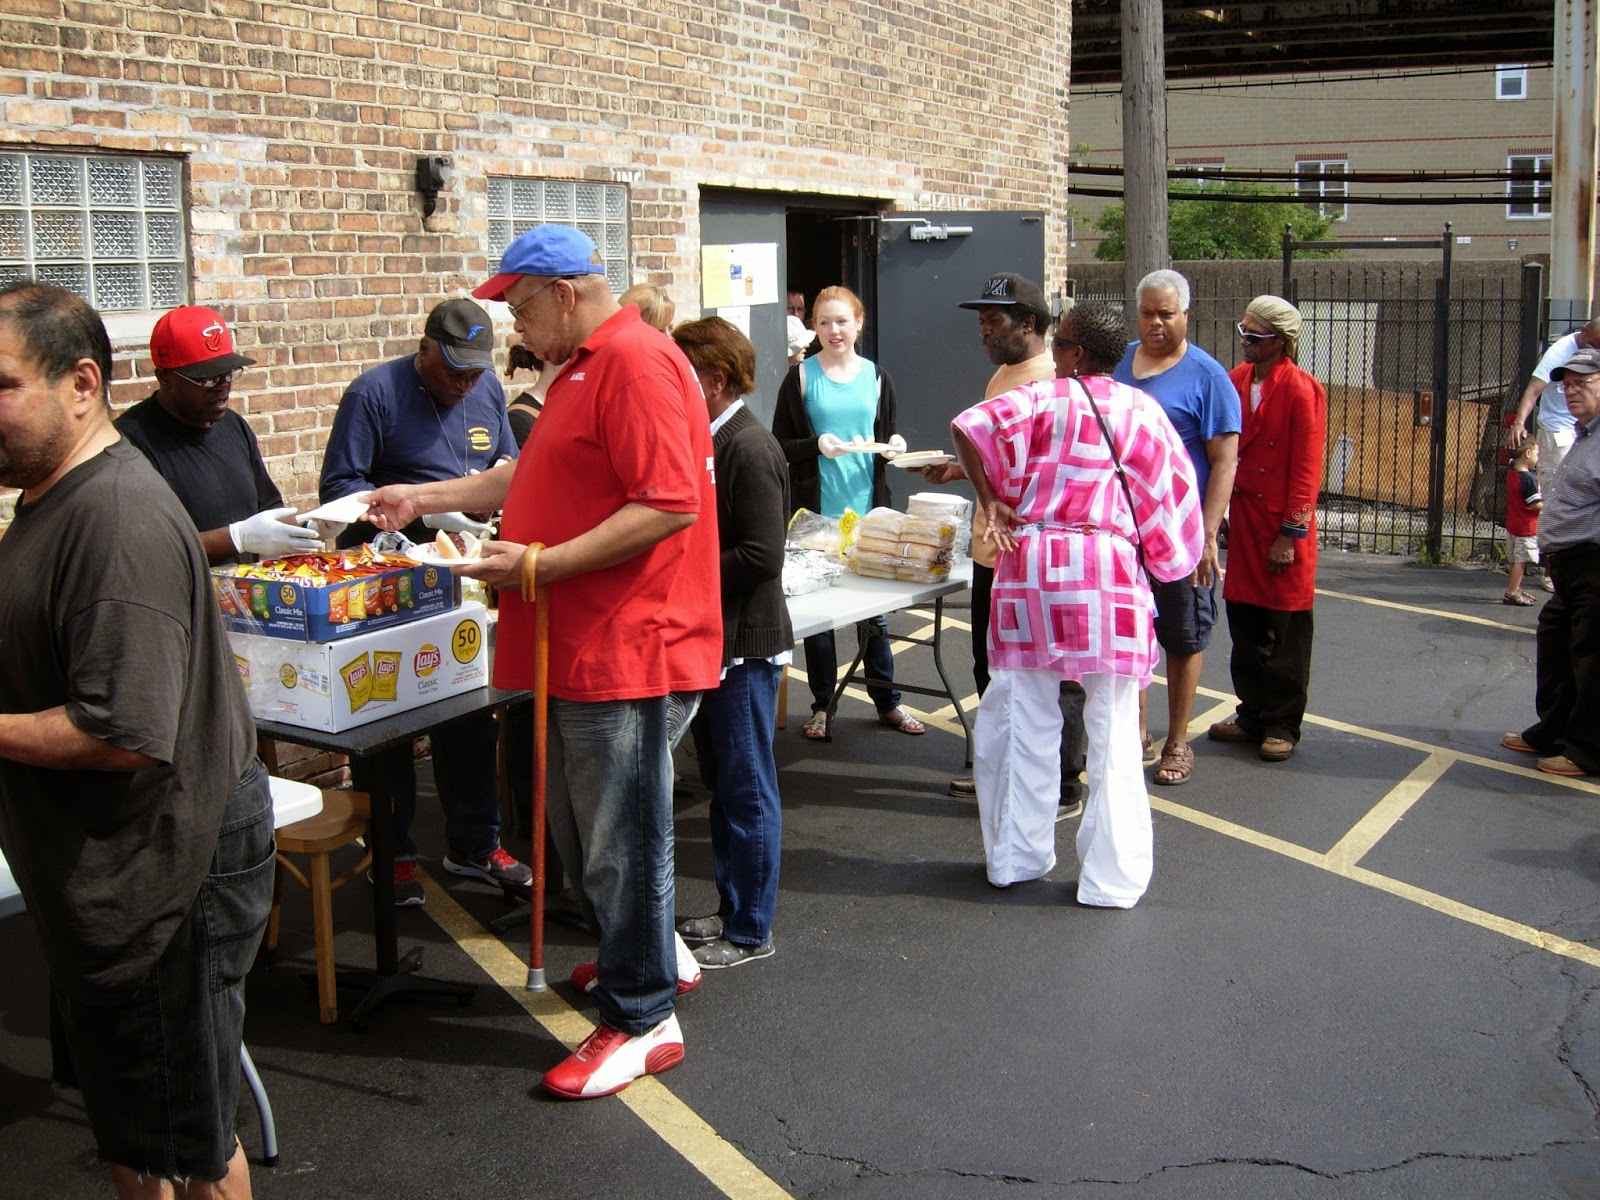 The food pantry is open every Saturday from 9 - 11 a.m. The food pantry serves residents of Cook County. Clients may visit the food pantry every Saturday.